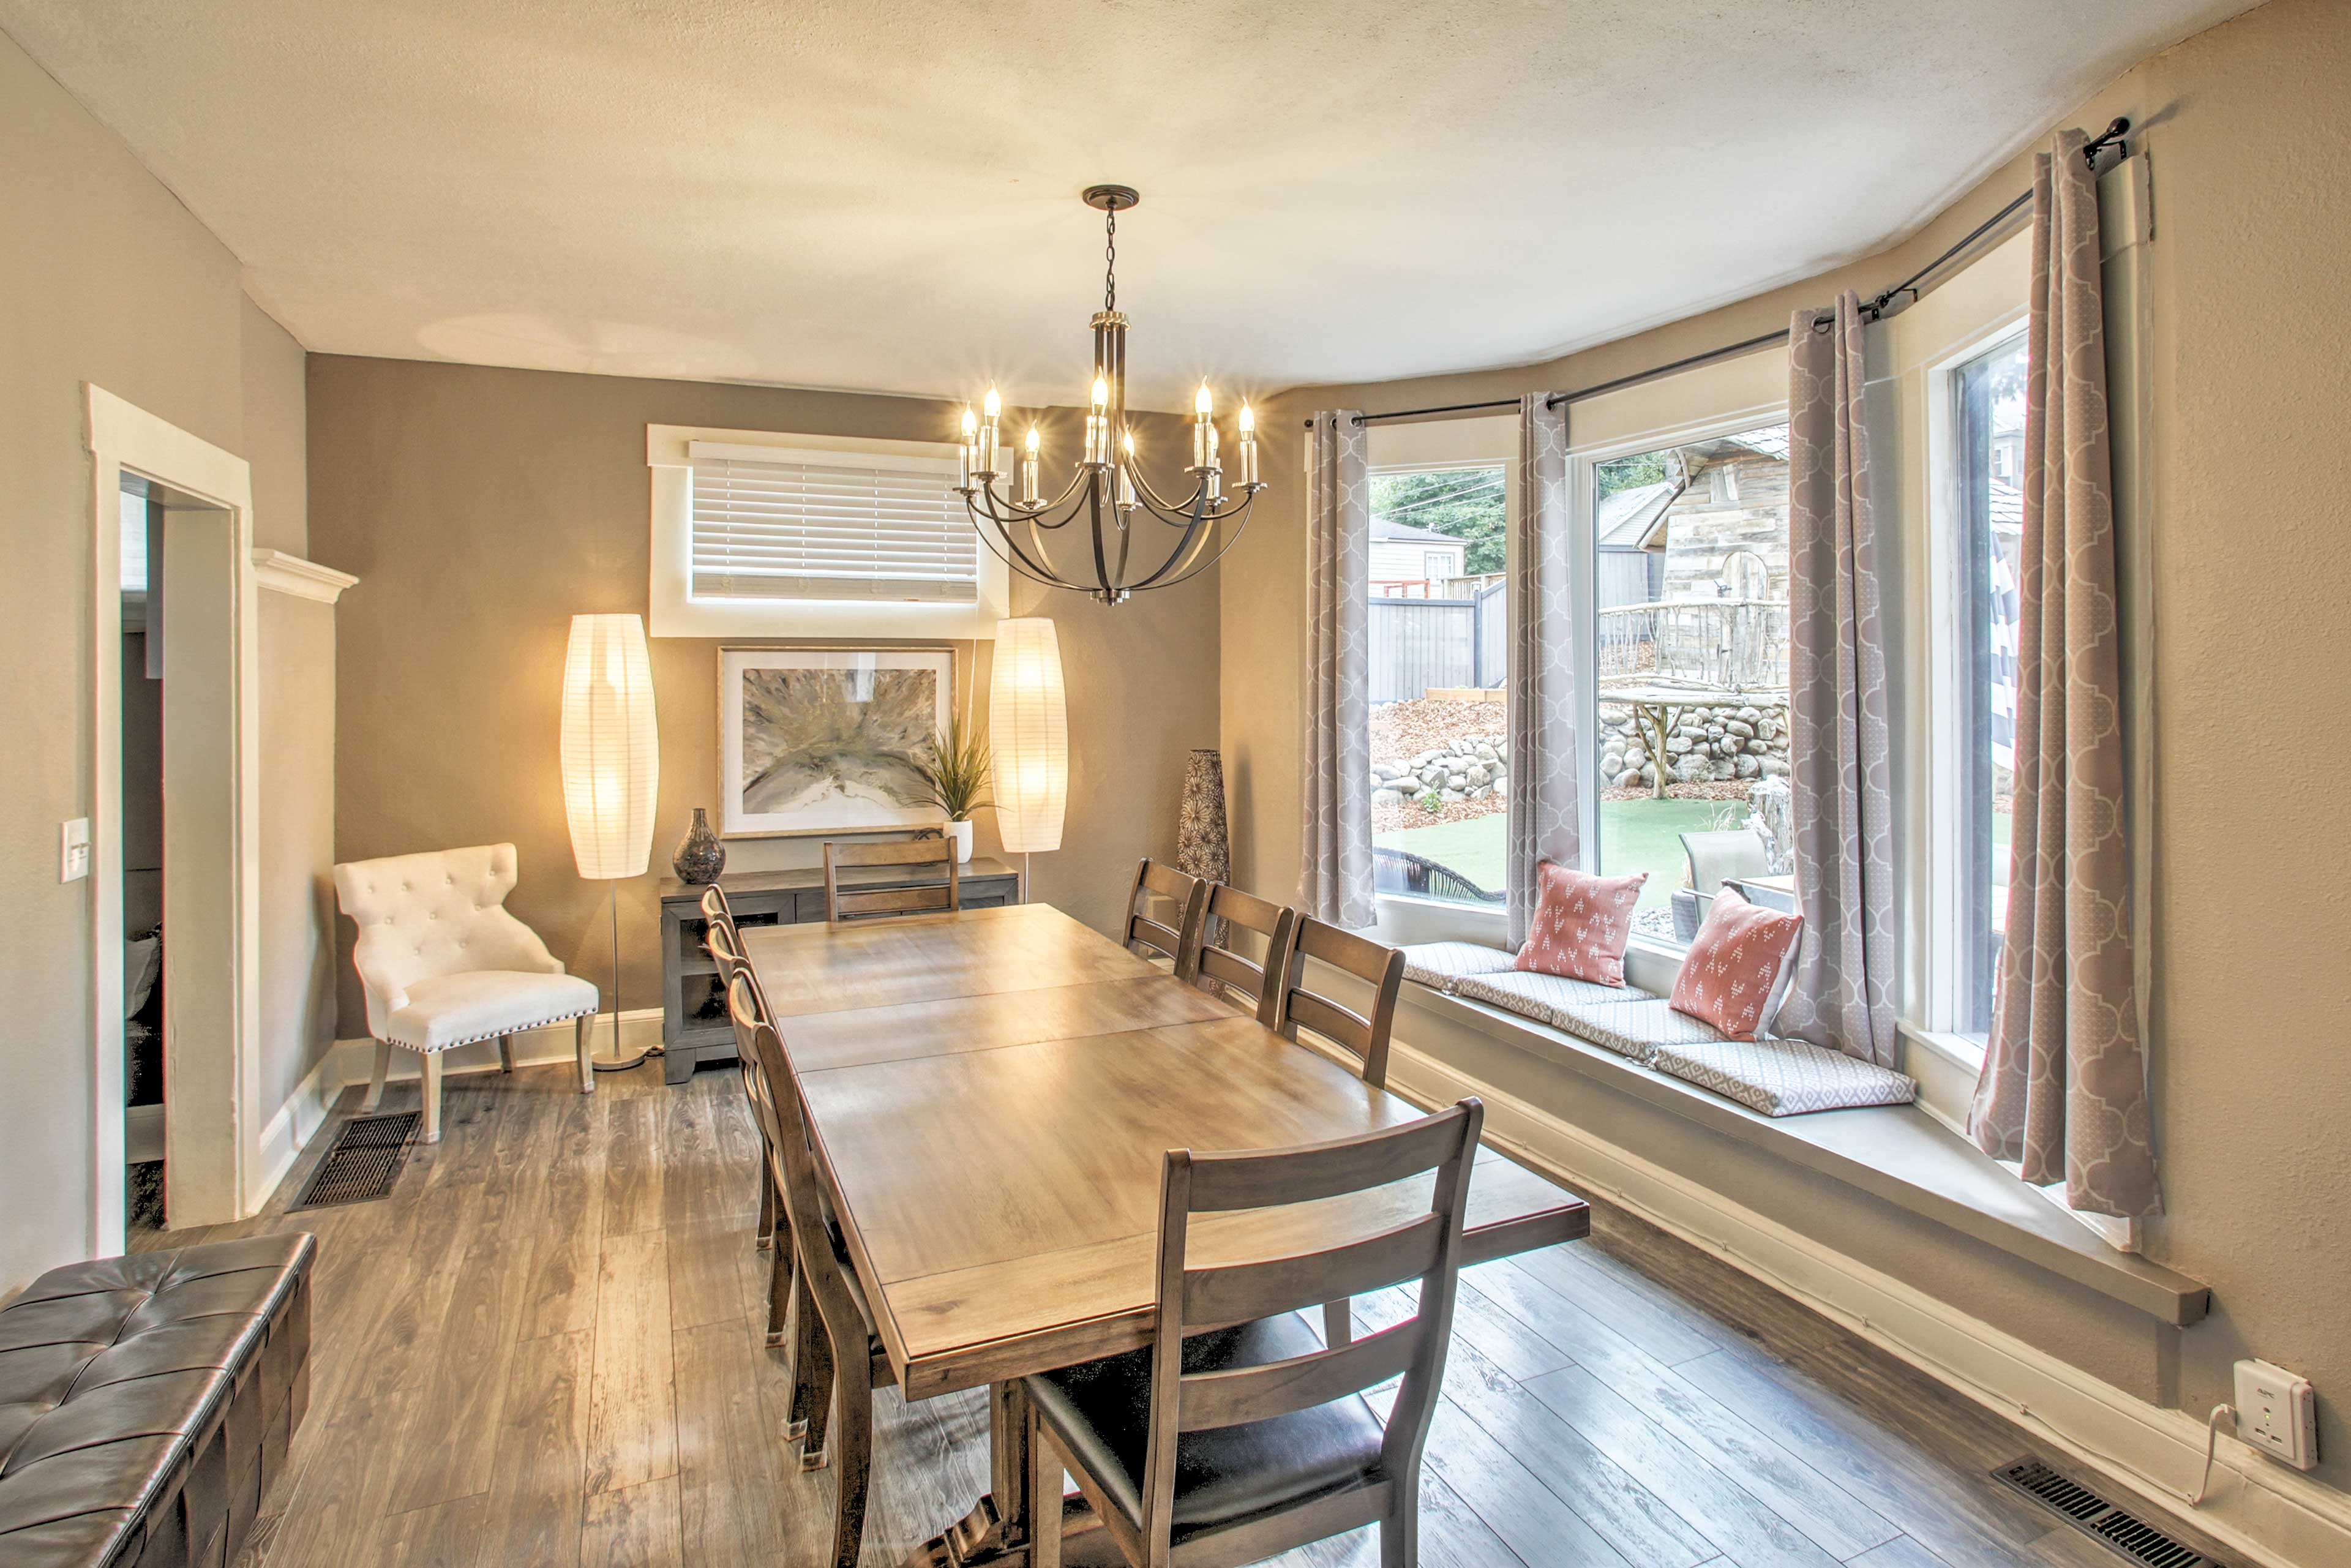 The pristine dining room features a table for 8!